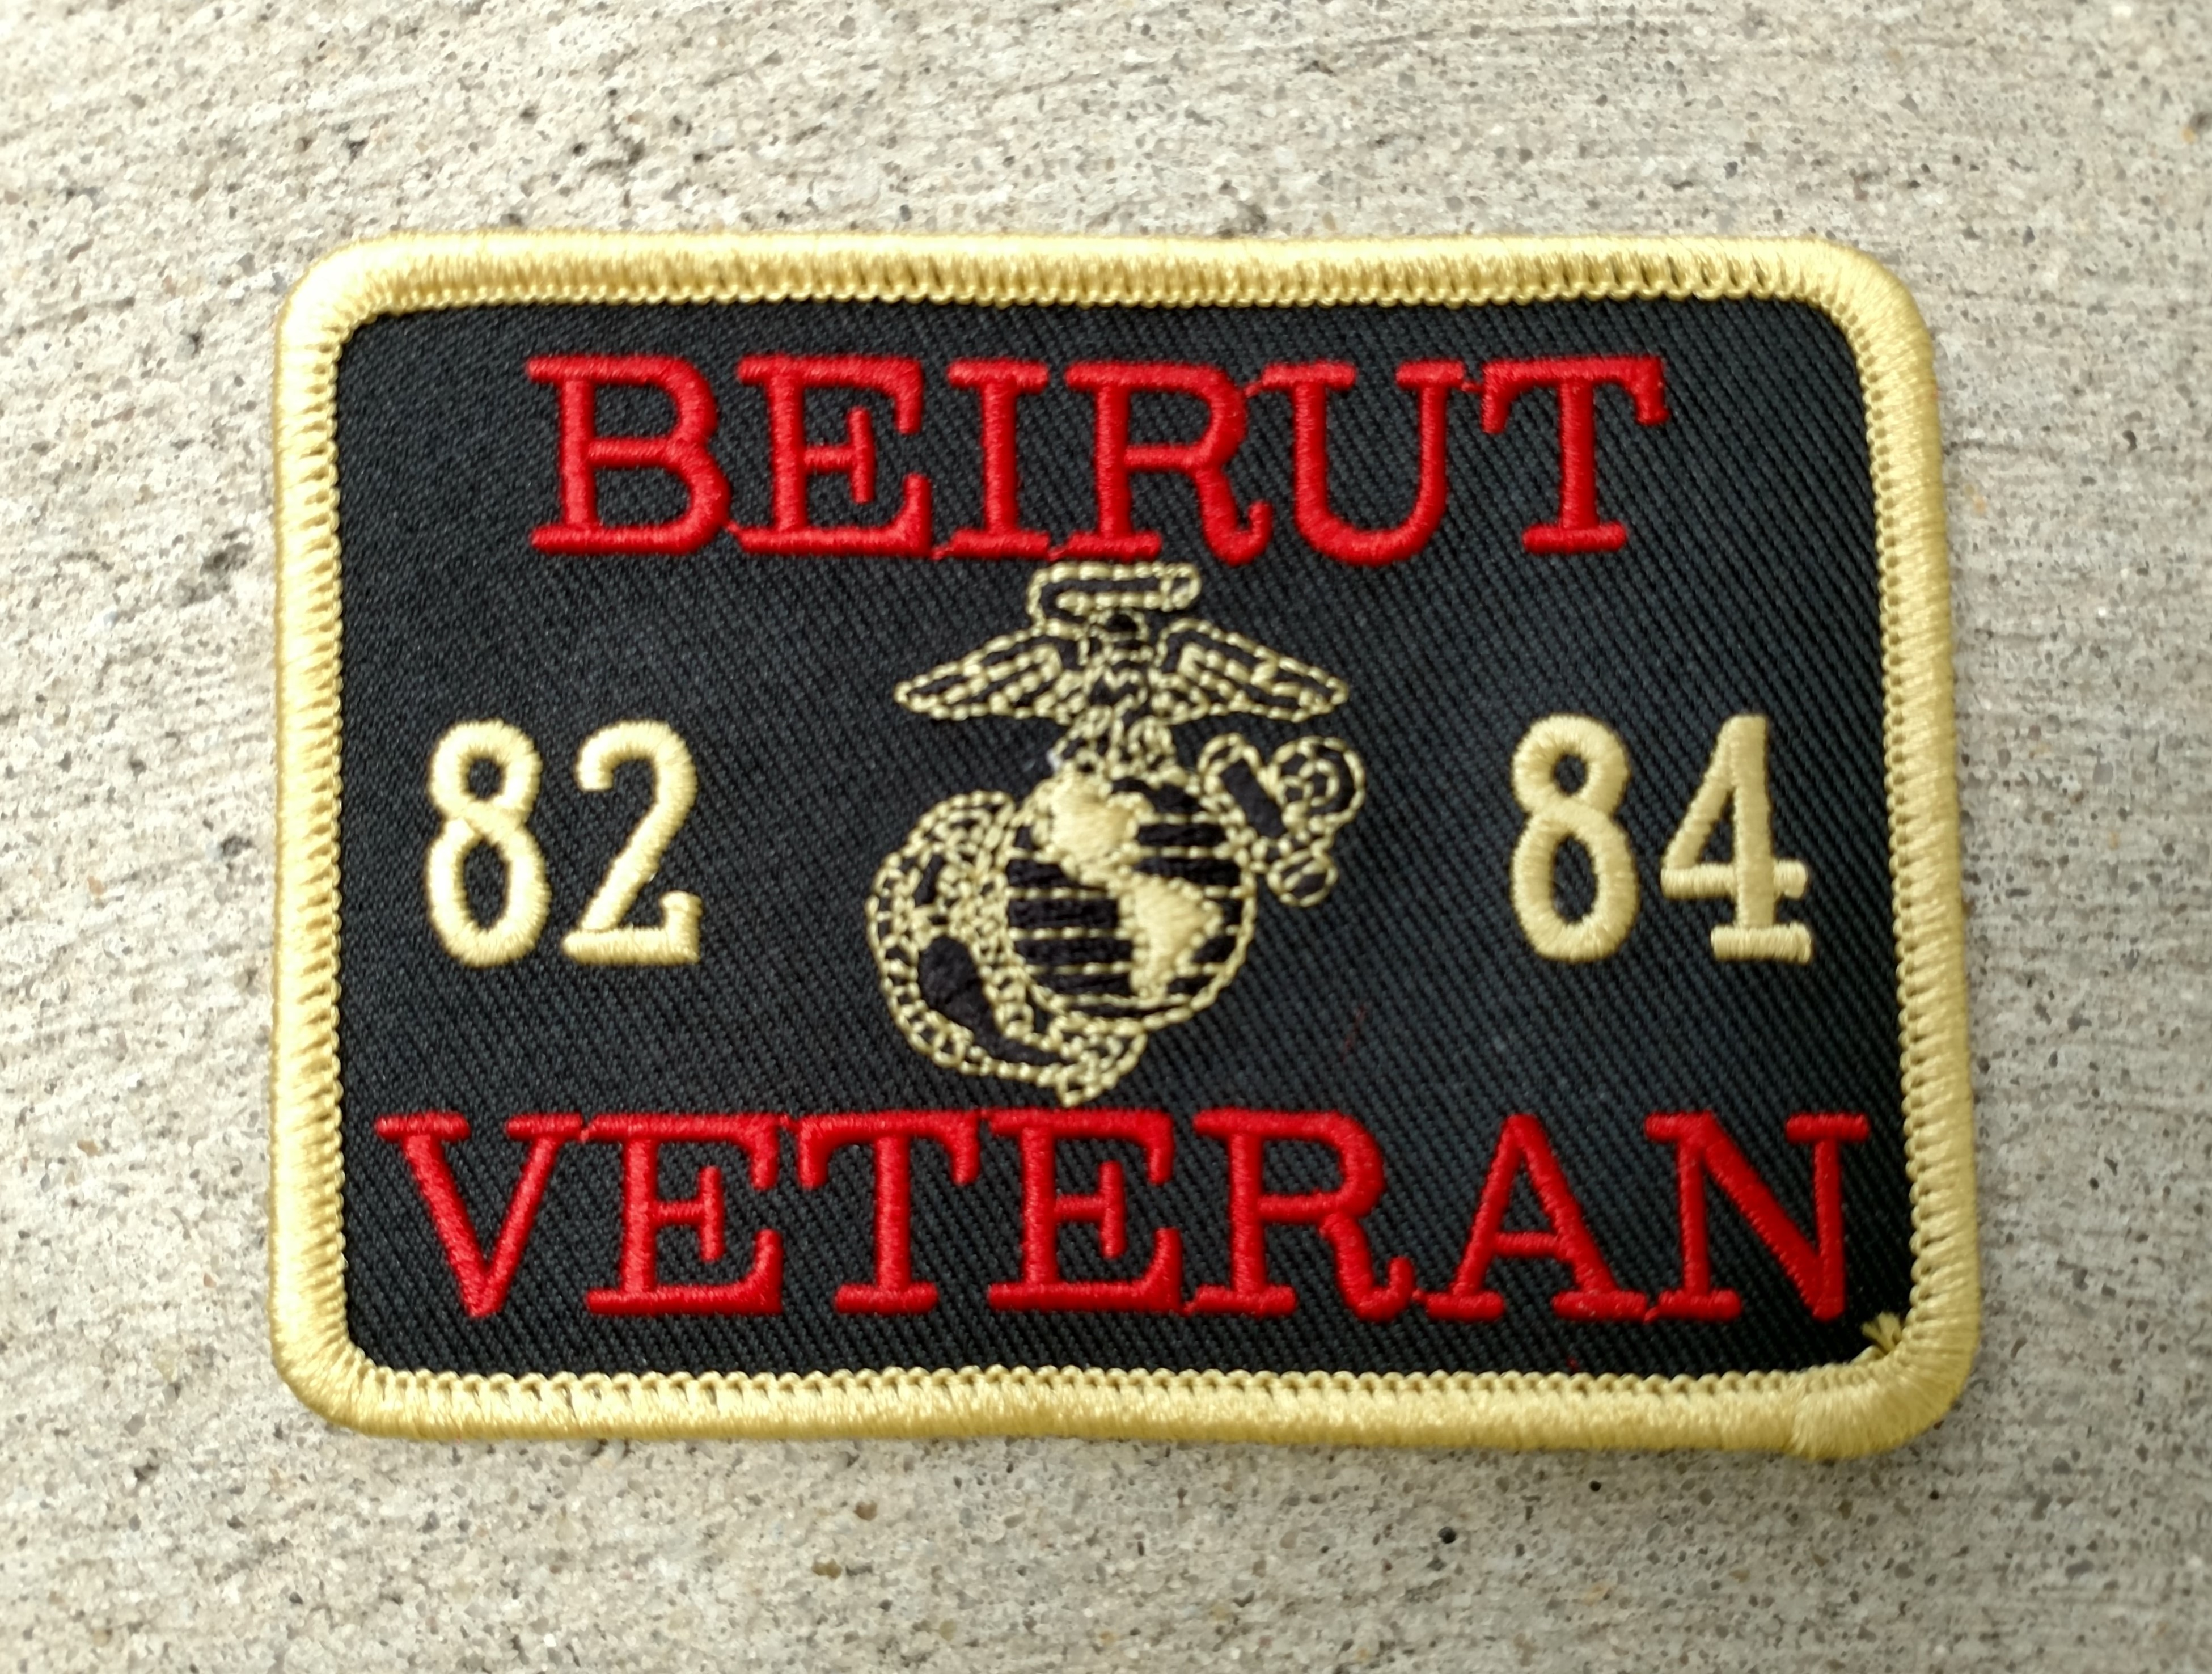 Patch-Beirut Veteran